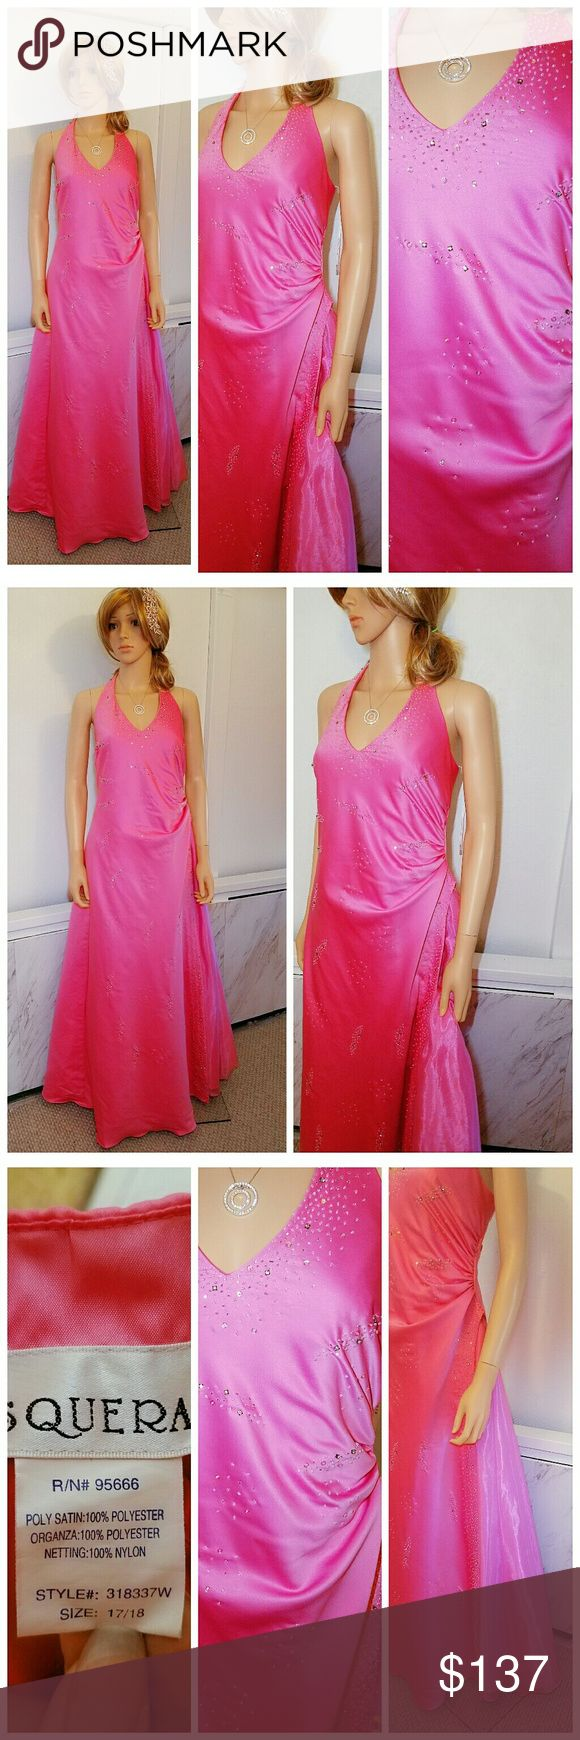 Wedding Prom Formal Gown Dress Pink 17 18 xl Grace any special occasion in this dress. Dress has a classic ball gown silhouette Bodice is adorned with intricate beading and is complimented by a full skirt. That watter falls with beaded detailing Hem features a mesh petticoat for added volume. You will look gorgeous in this gown!   🌹 25% off on bundles   Inventory #98 Dresses Prom